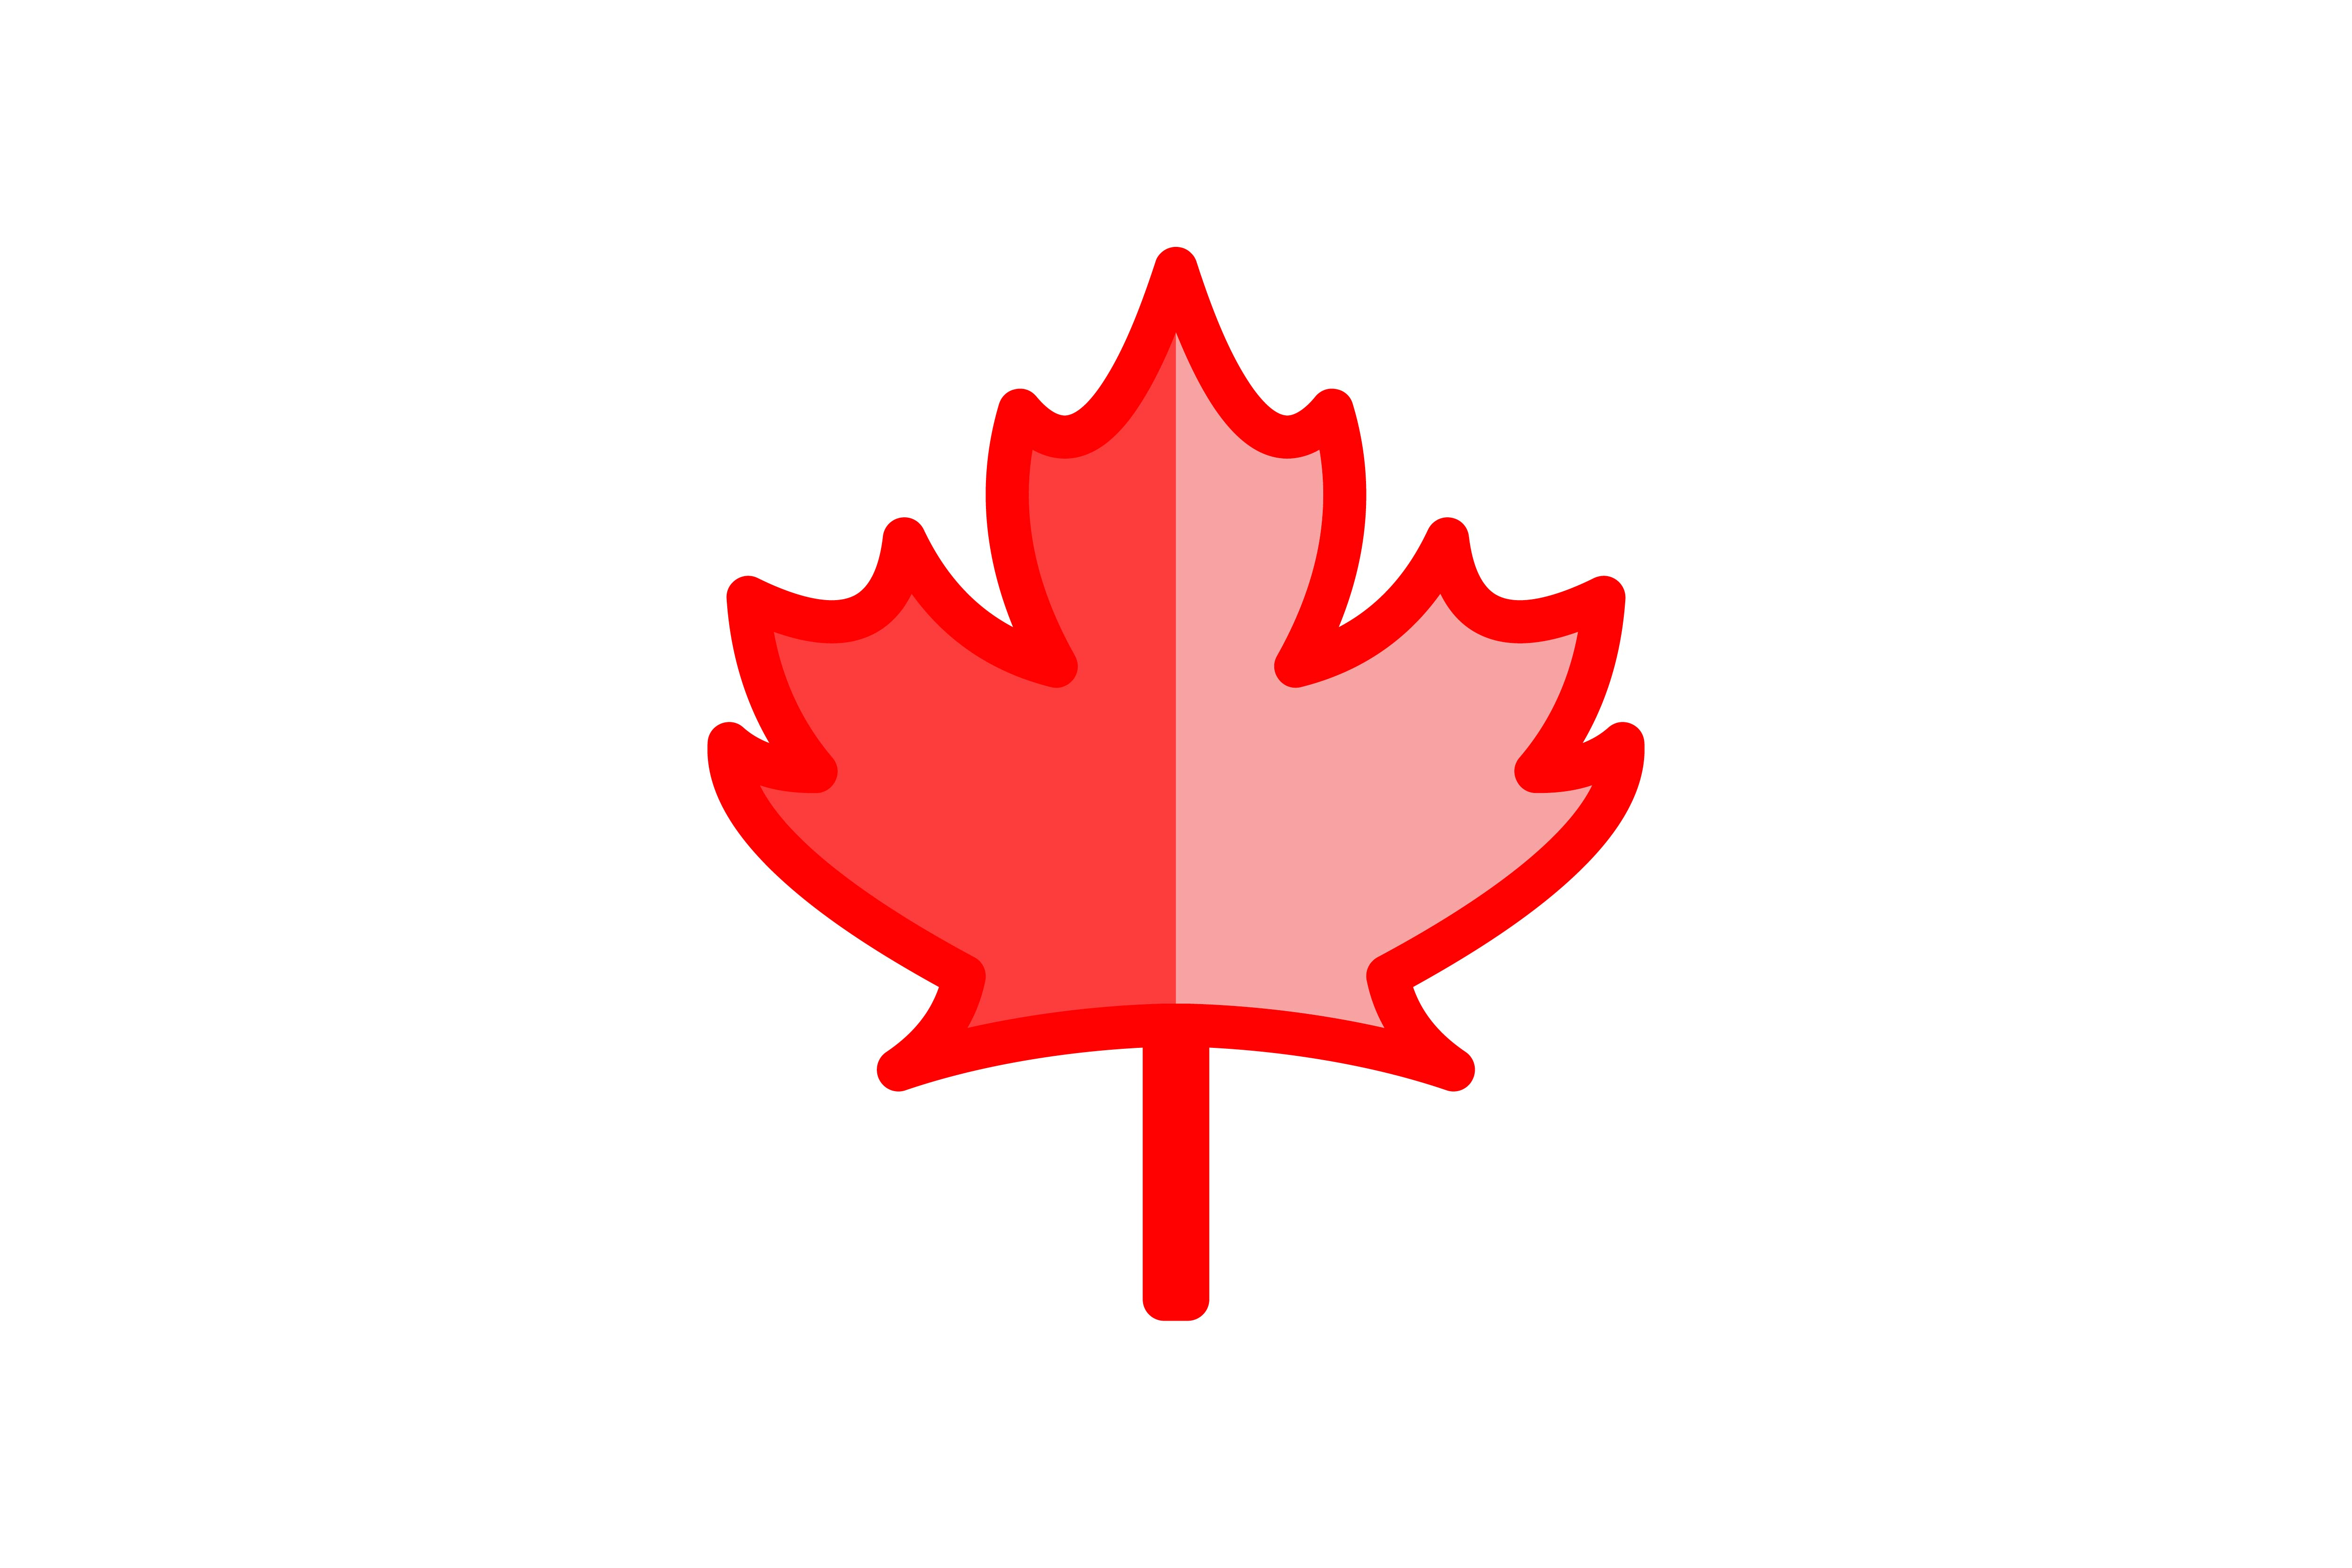 Download Free Canadian Red Maple Leaf Logo Graphic By Yahyaanasatokillah for Cricut Explore, Silhouette and other cutting machines.